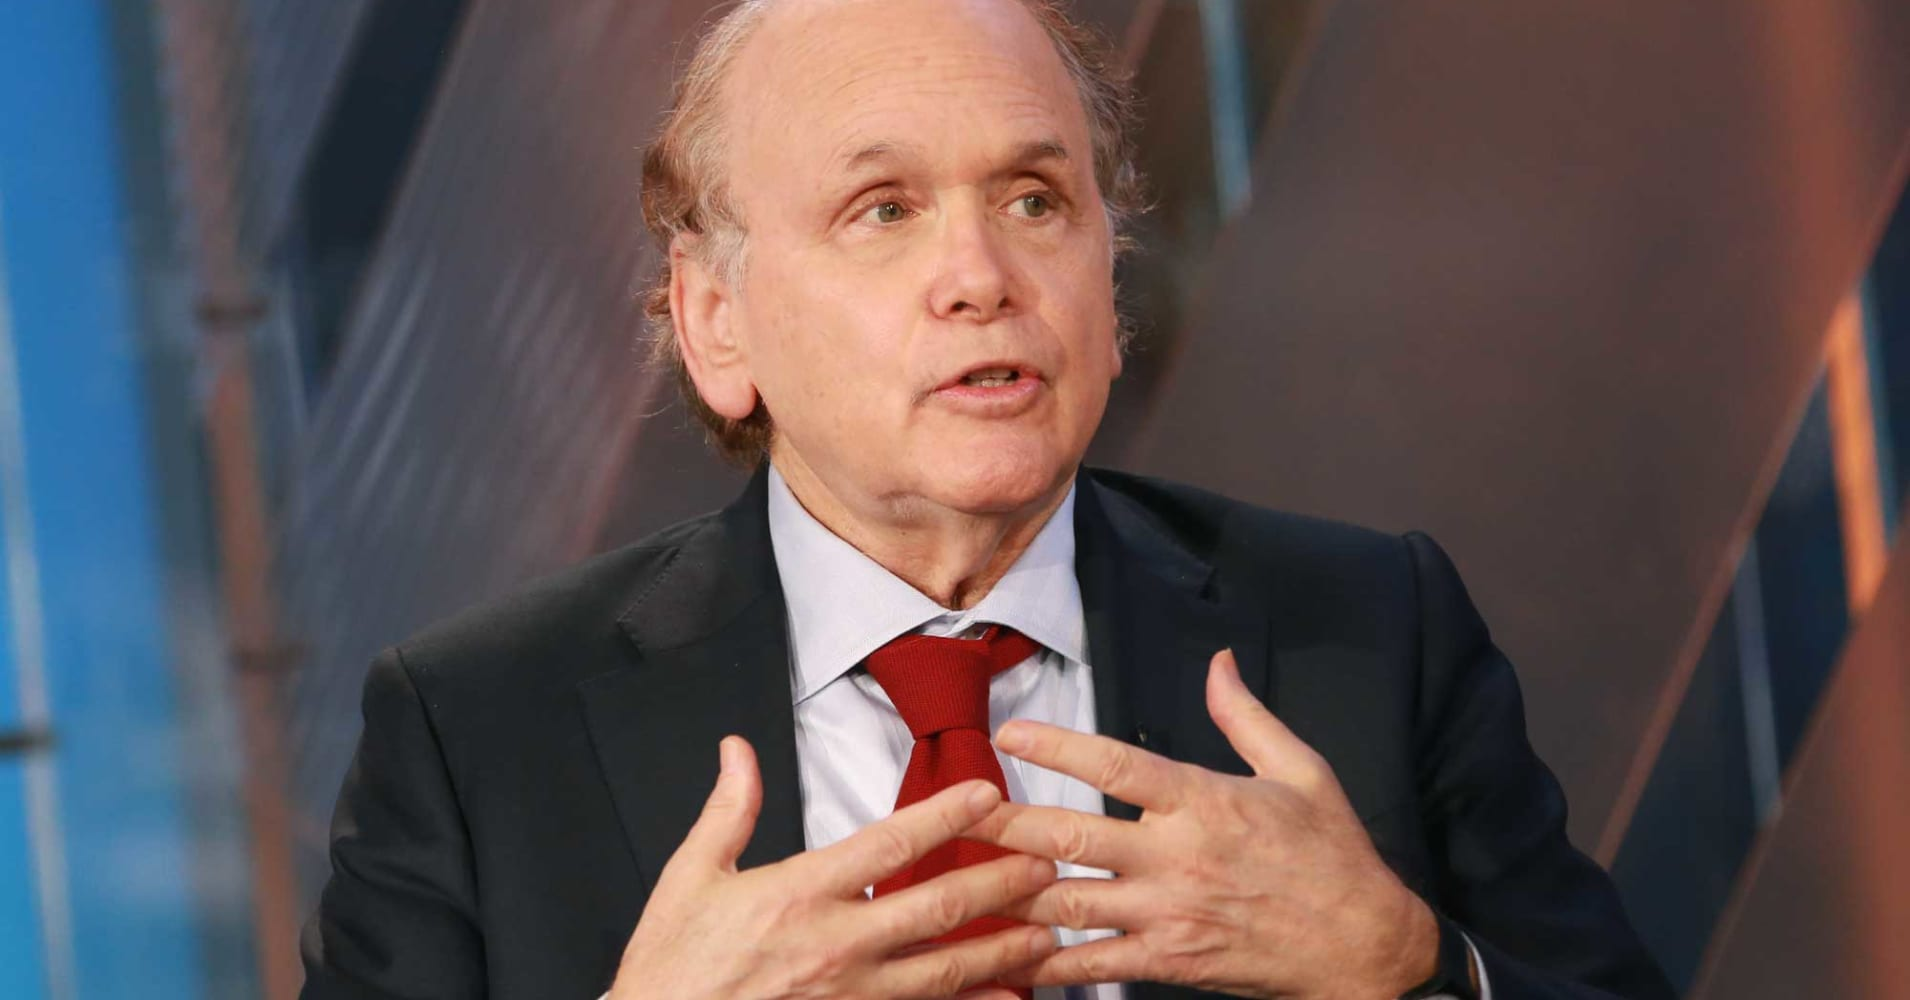 Oil prices could rise to $85 a barrel by July, warns energy expert Dan Yergin